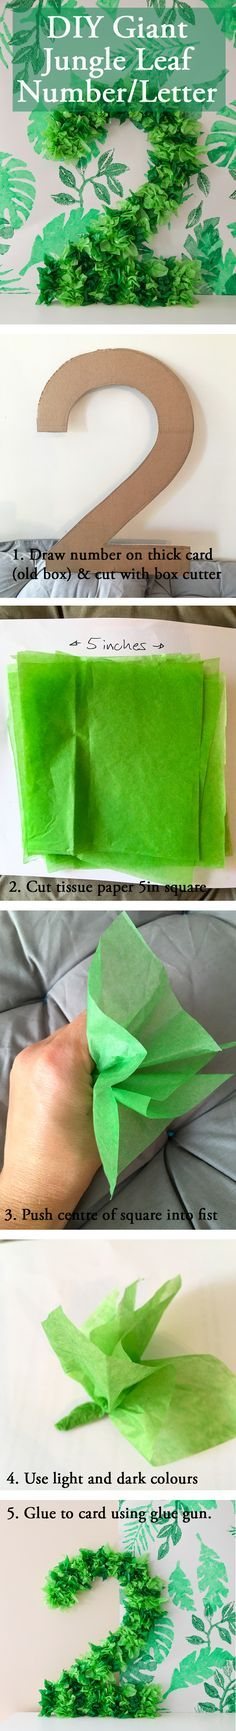 DIY How to make giant number letter to look like foliage out of green tissue paper. Click to get more inspiration on The Impala Collection website. Keywords: Camping, Out of Africa, Safari, Jungle, Africa, Savannah, Serengeti, Zoo, Leaf, Wildlife, Wild, Decor, Party planning, Kids parties, Birthday parties, Christening parties, Education, DIY, Tribal, Tropical, Bush, Theme, Interiors, Tips, Ideas, Advice, Crafts, Budget, Homeware, Serveware, Fair Trade, UK